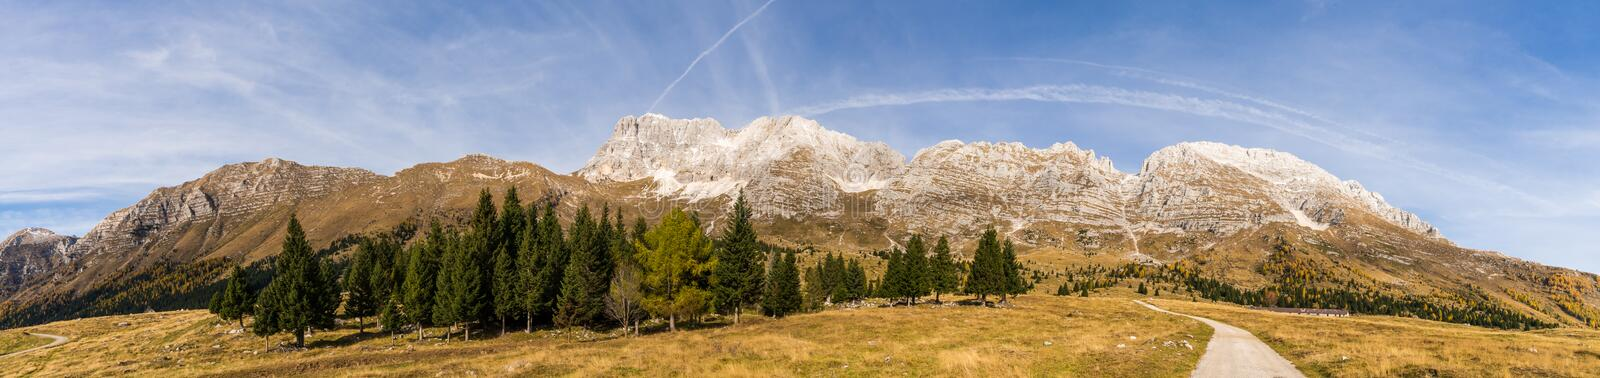 View to the Montasio Massif. Panorama view of the Montasio Massif from the souther side (Pecol Alm) at a sunny autumn day stock photography